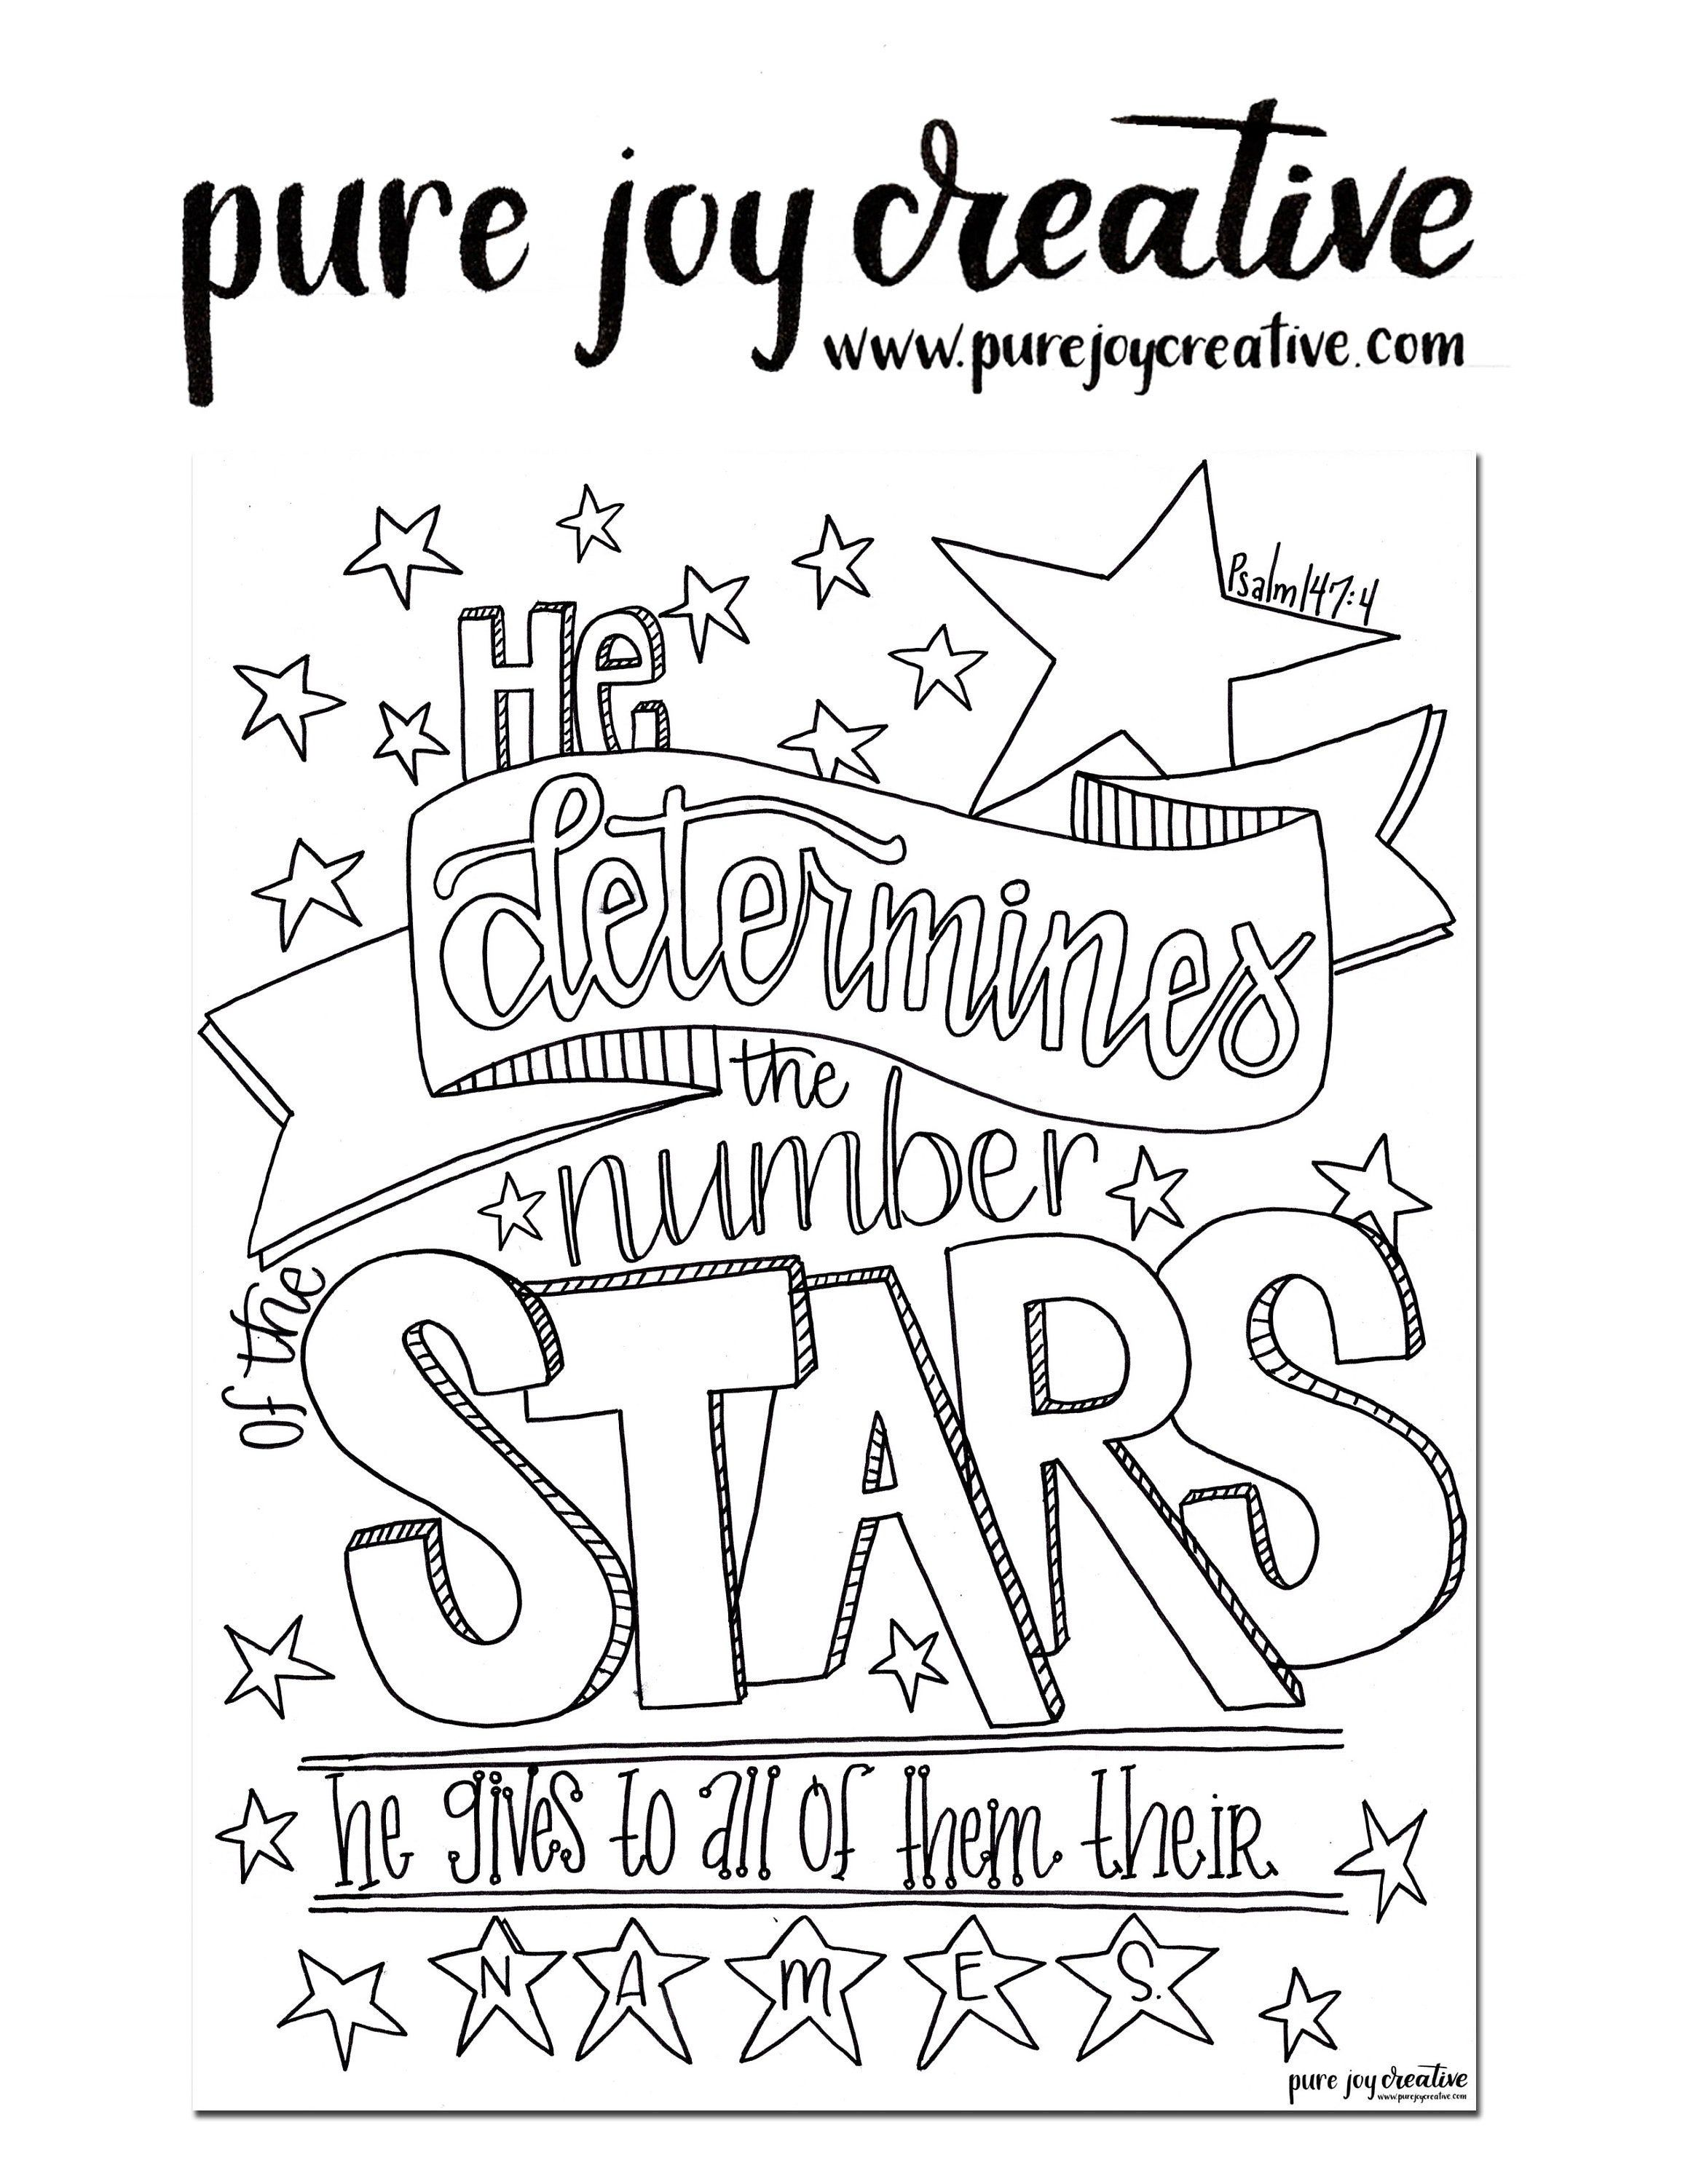 Psalm 147 Coloring Page Bible Verse Art Scripture Art Coloring